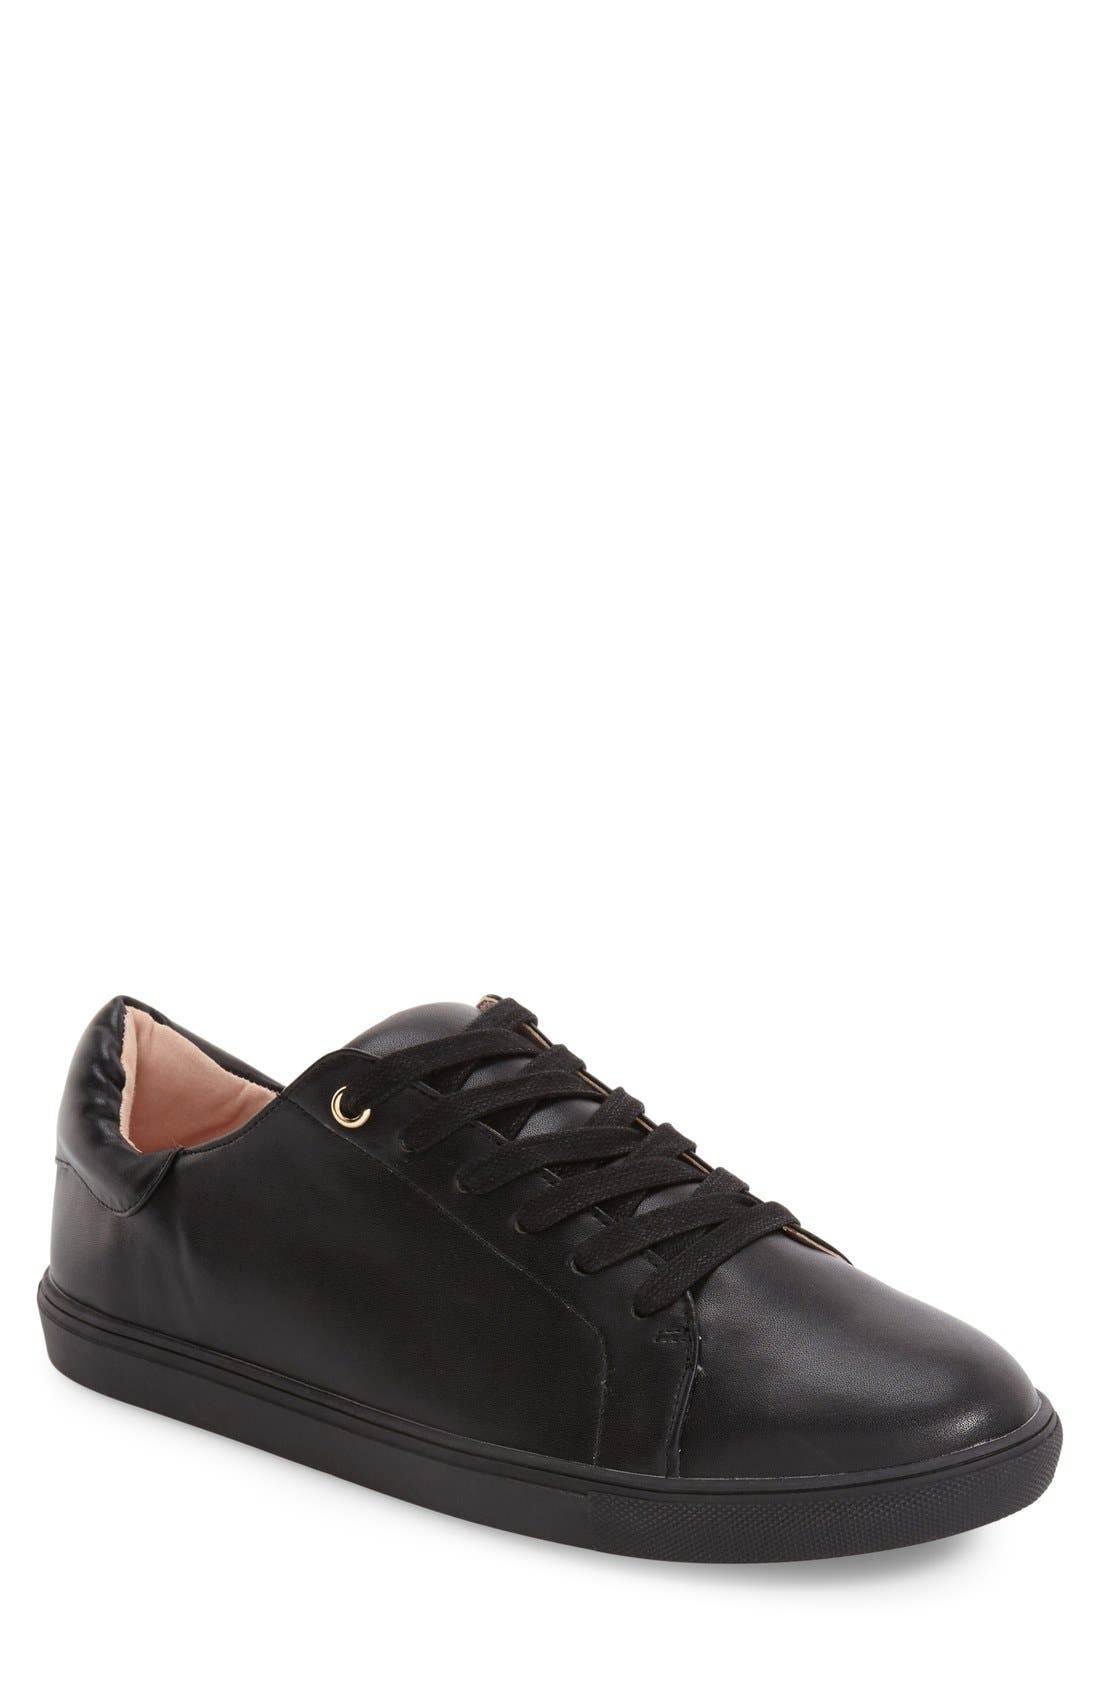 Alternate Image 1 Selected - Topshop Catseye Sneaker (Women)